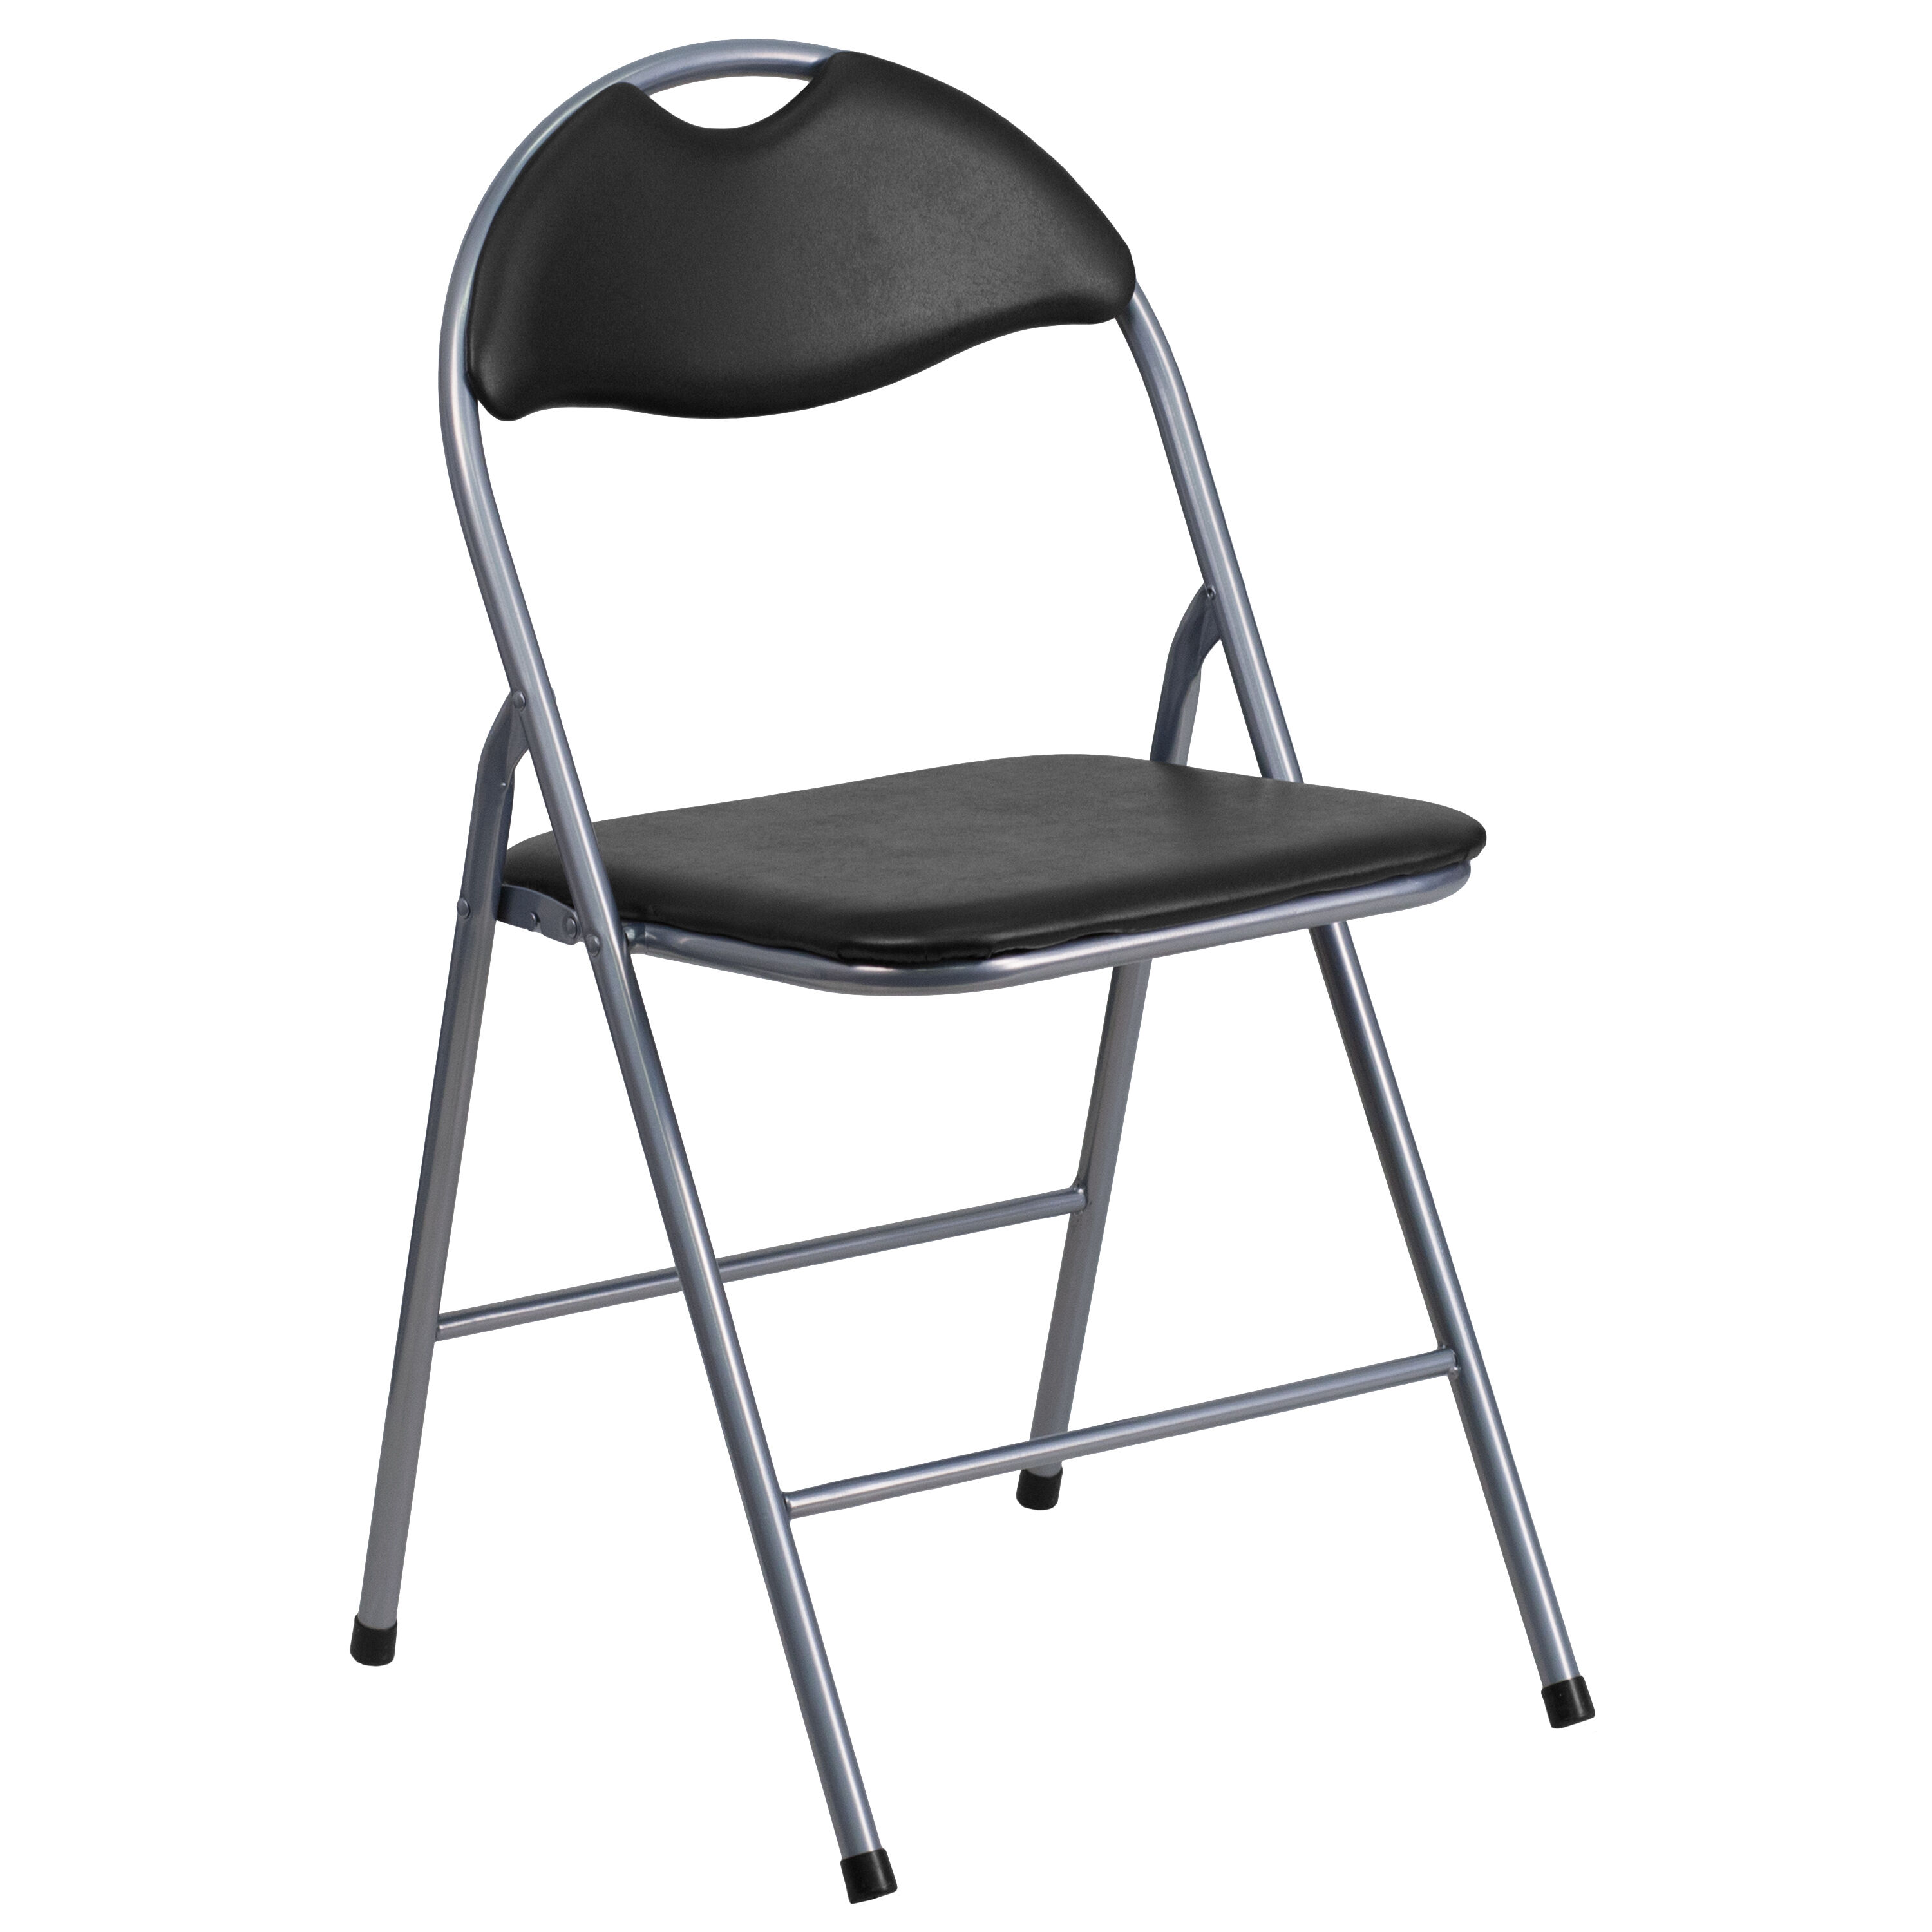 ... Our HERCULES Series Black Vinyl Metal Folding Chair With Carrying  Handle Is On Sale Now.